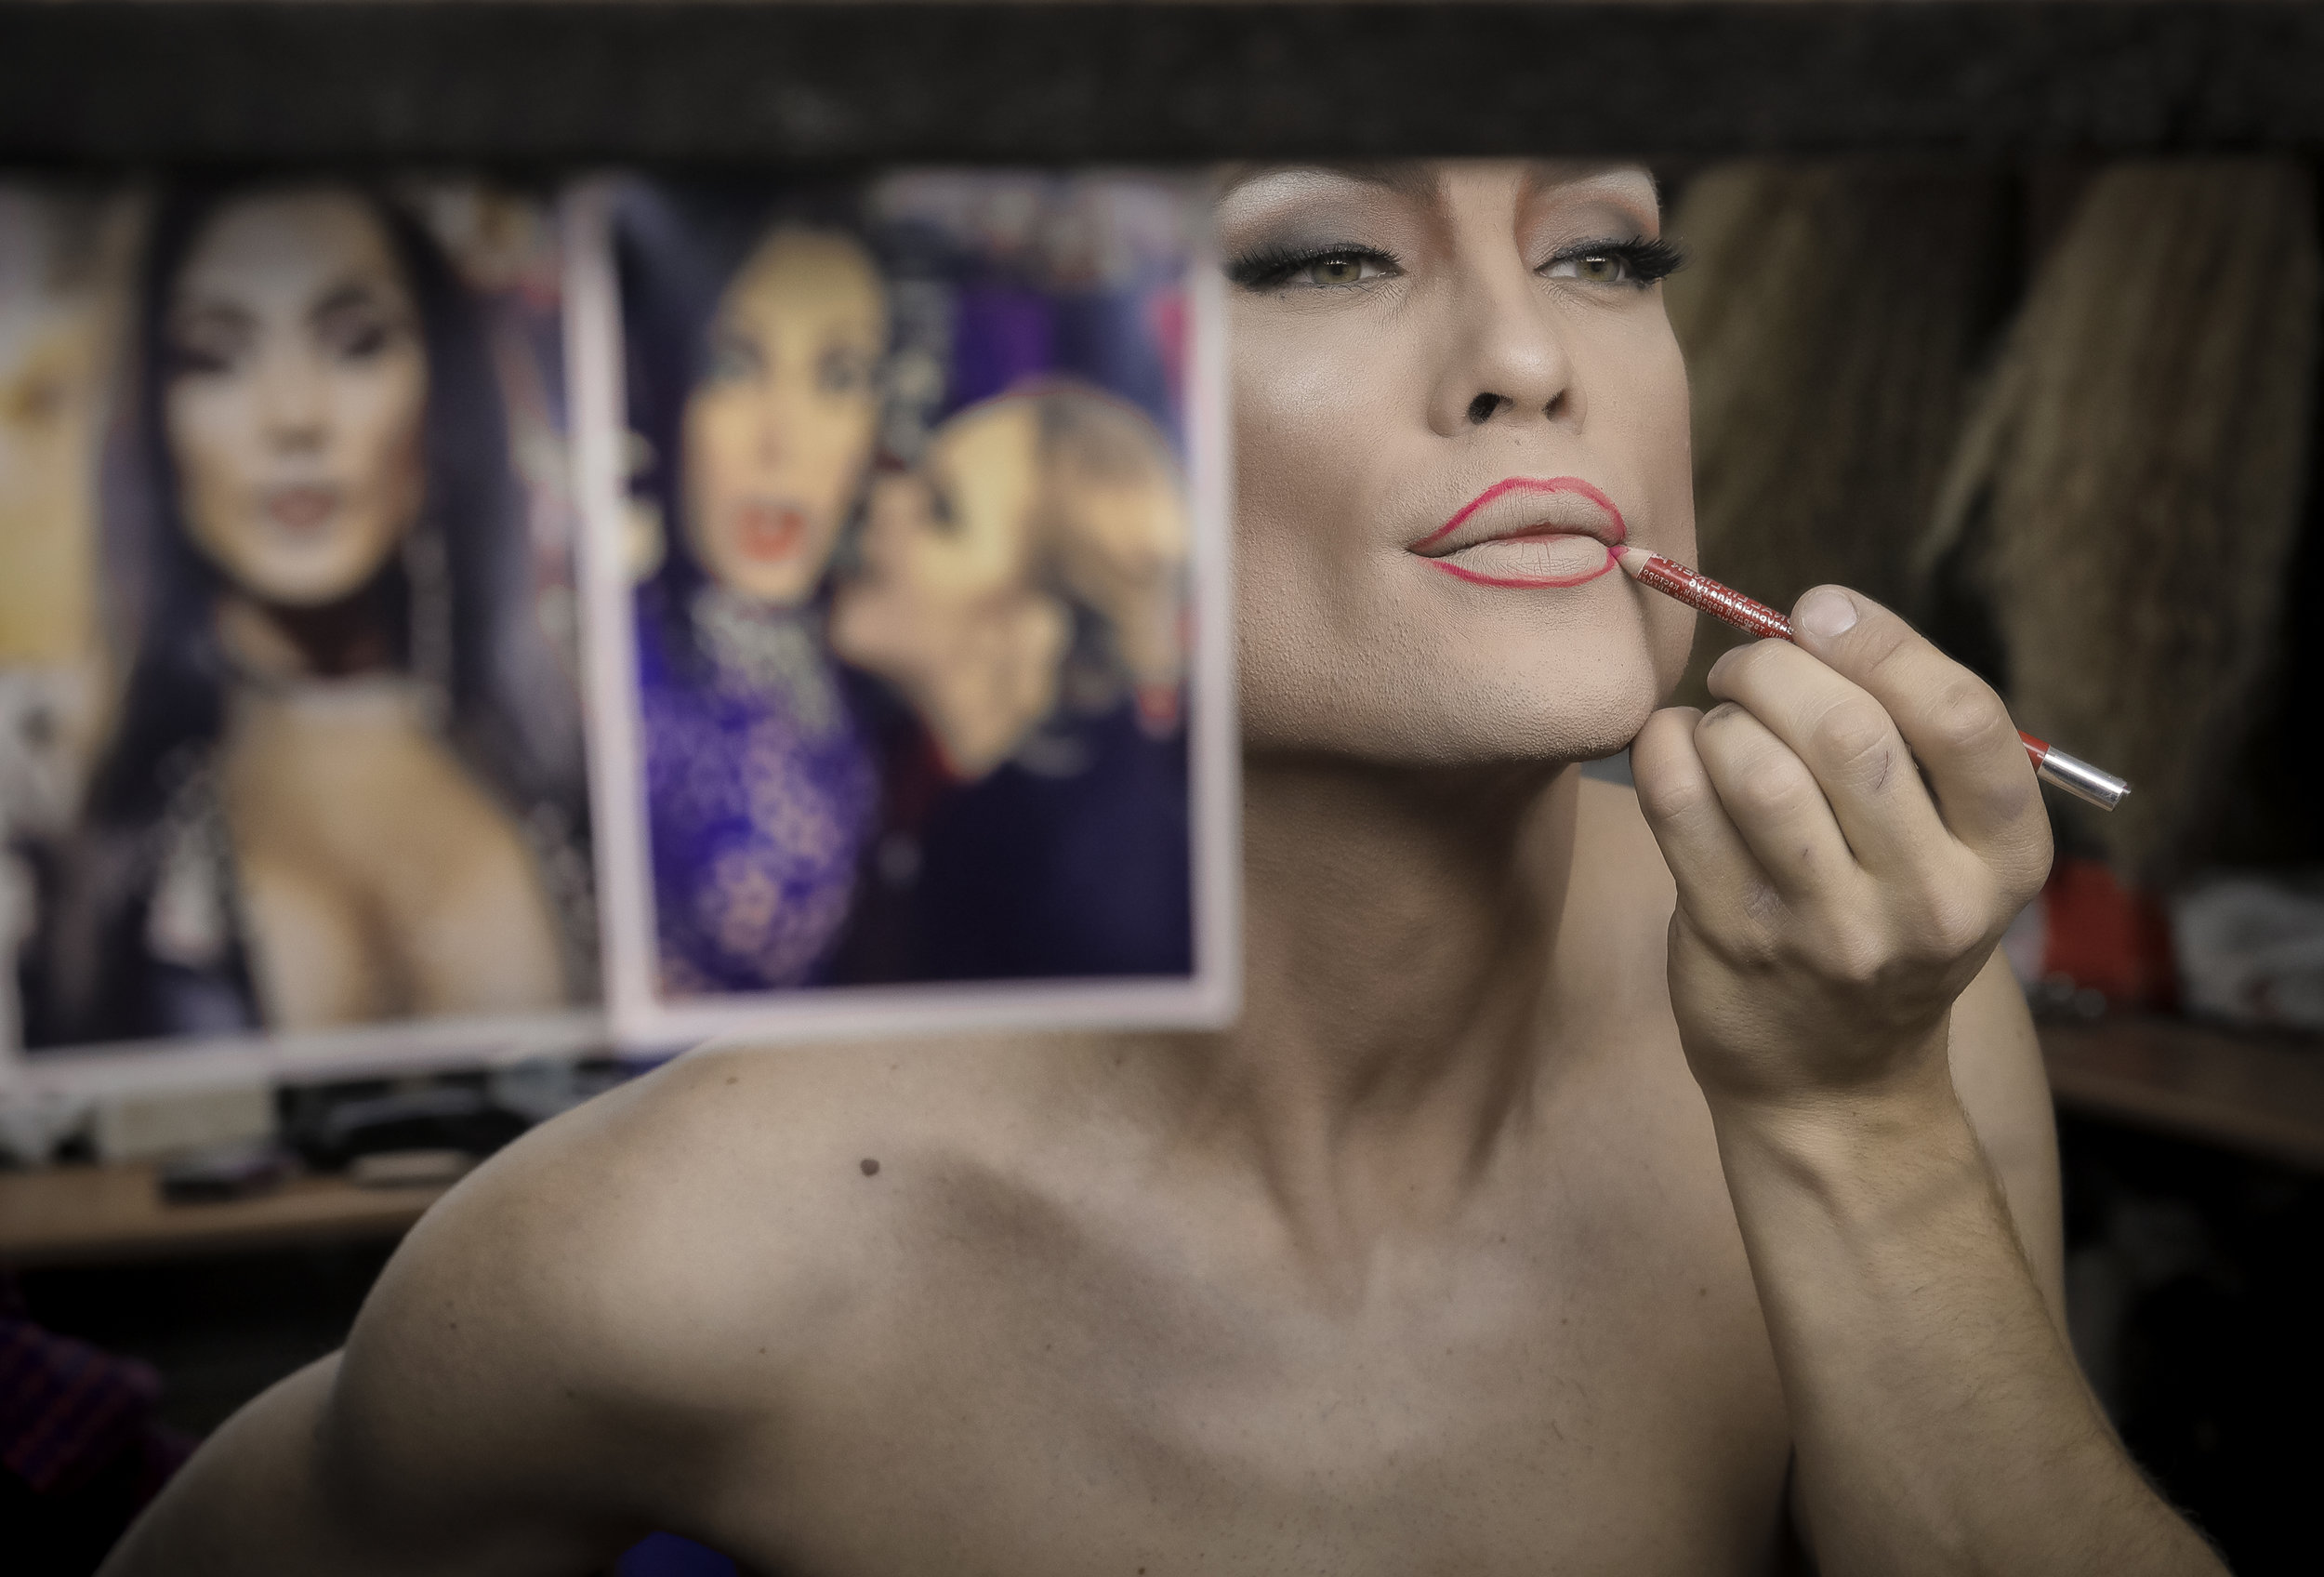 Andrei, who goes by the name of Star Vasha applies lip liner backstage before performing at the Fame gay club during the 2018 soccer World Cup in Yekaterinburg, Russia. (AP Photo/Vadim Ghirda)